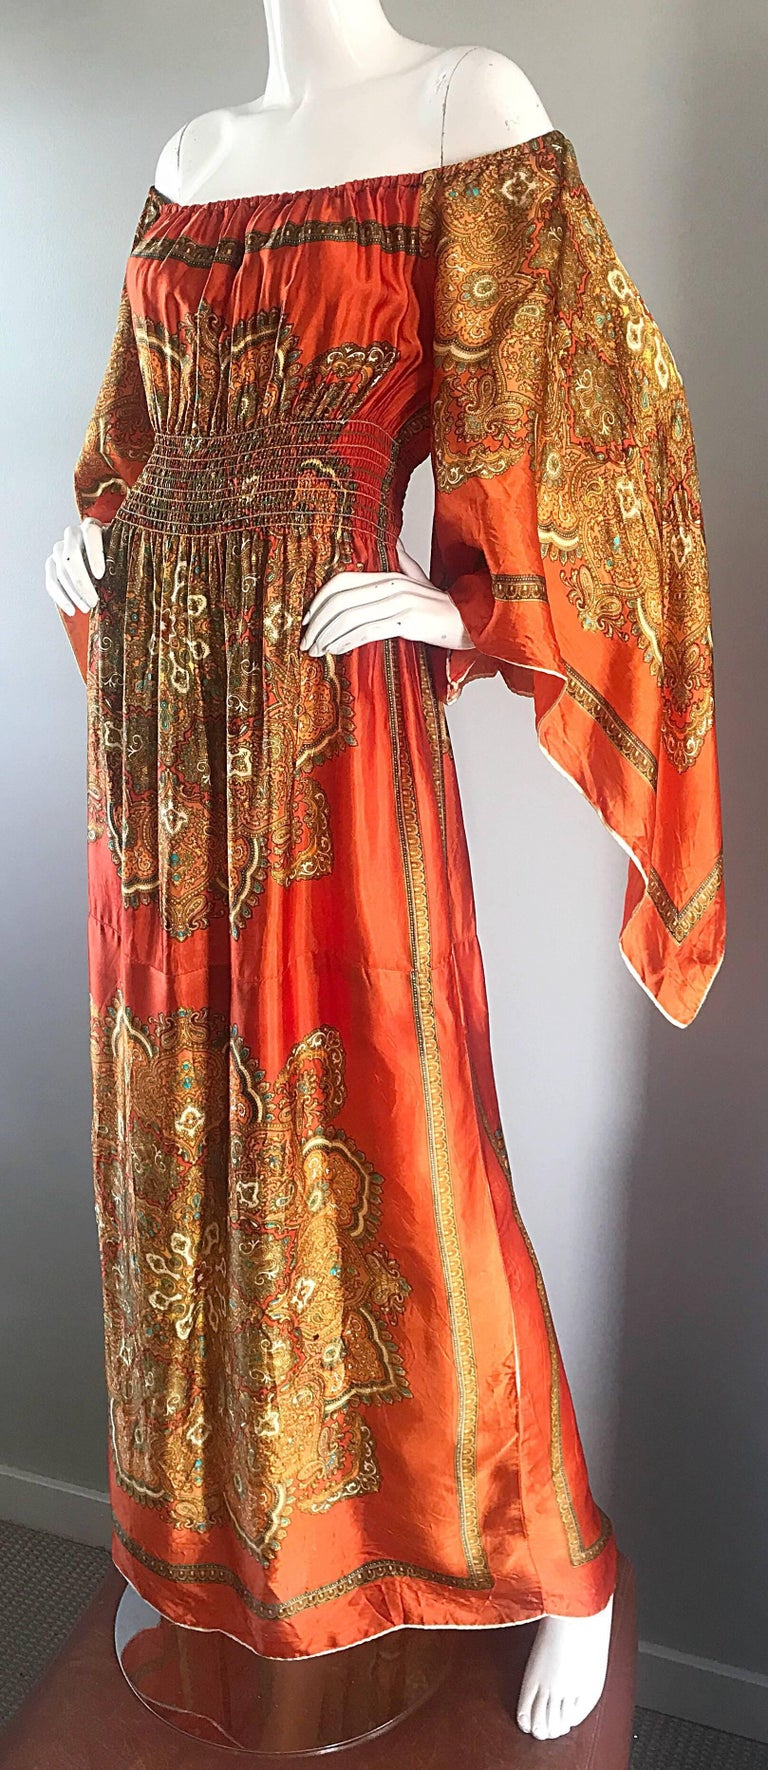 Amazing 1970s Off - Shoulder Boho Ethnic Print Silky Vintage 70s Maxi Dress 3